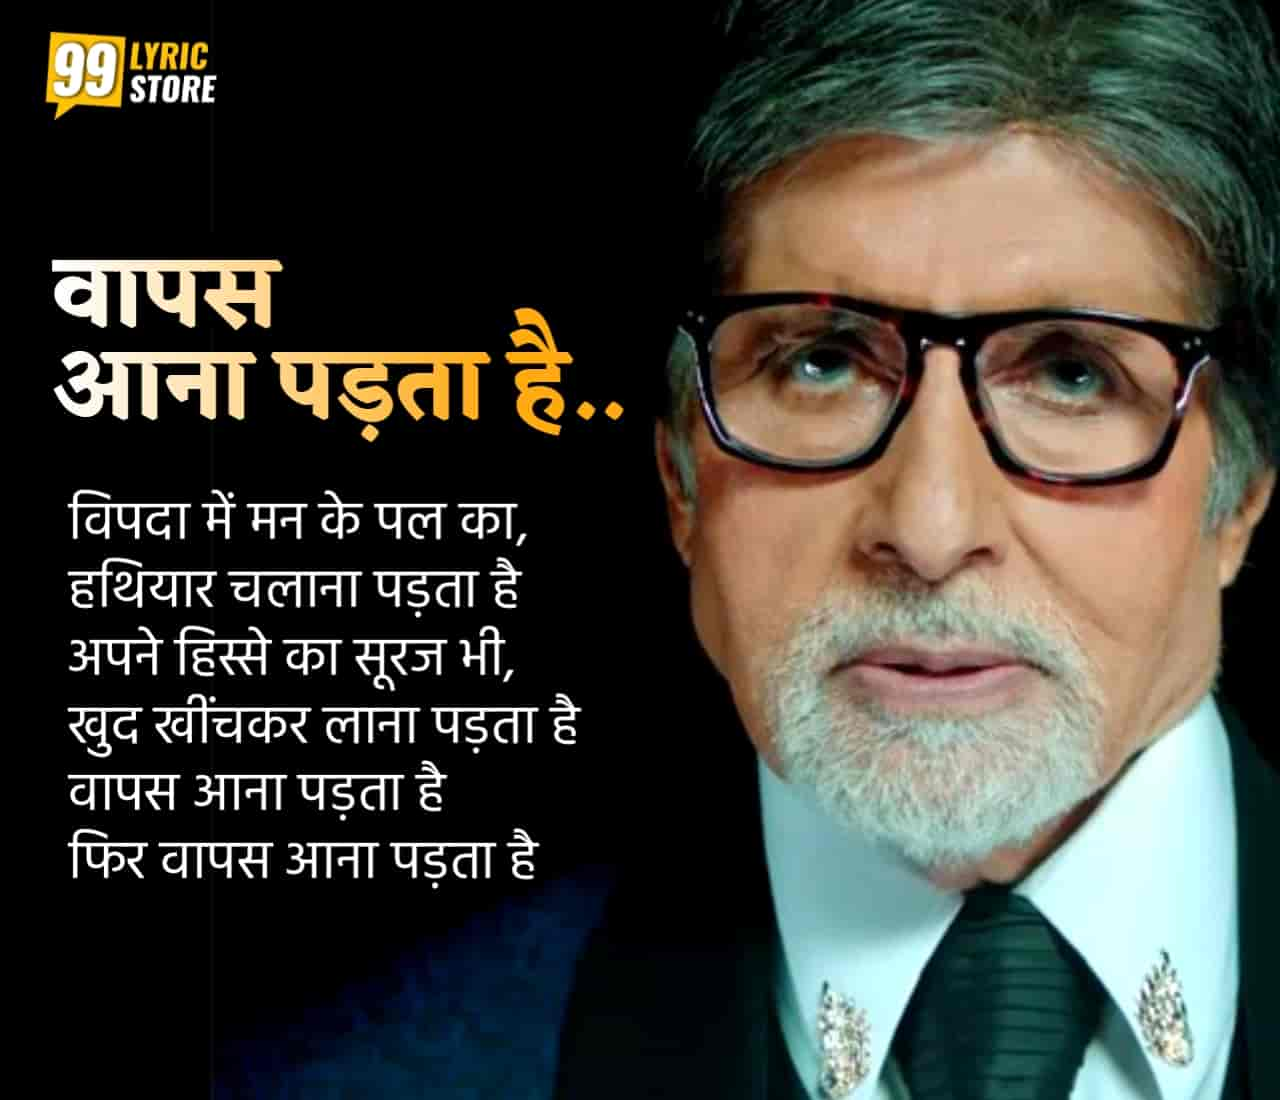 Amitabh Bachchan, who has recently returned to recover from covid-19, has shared a very inspiring and motivating poem on his social media.